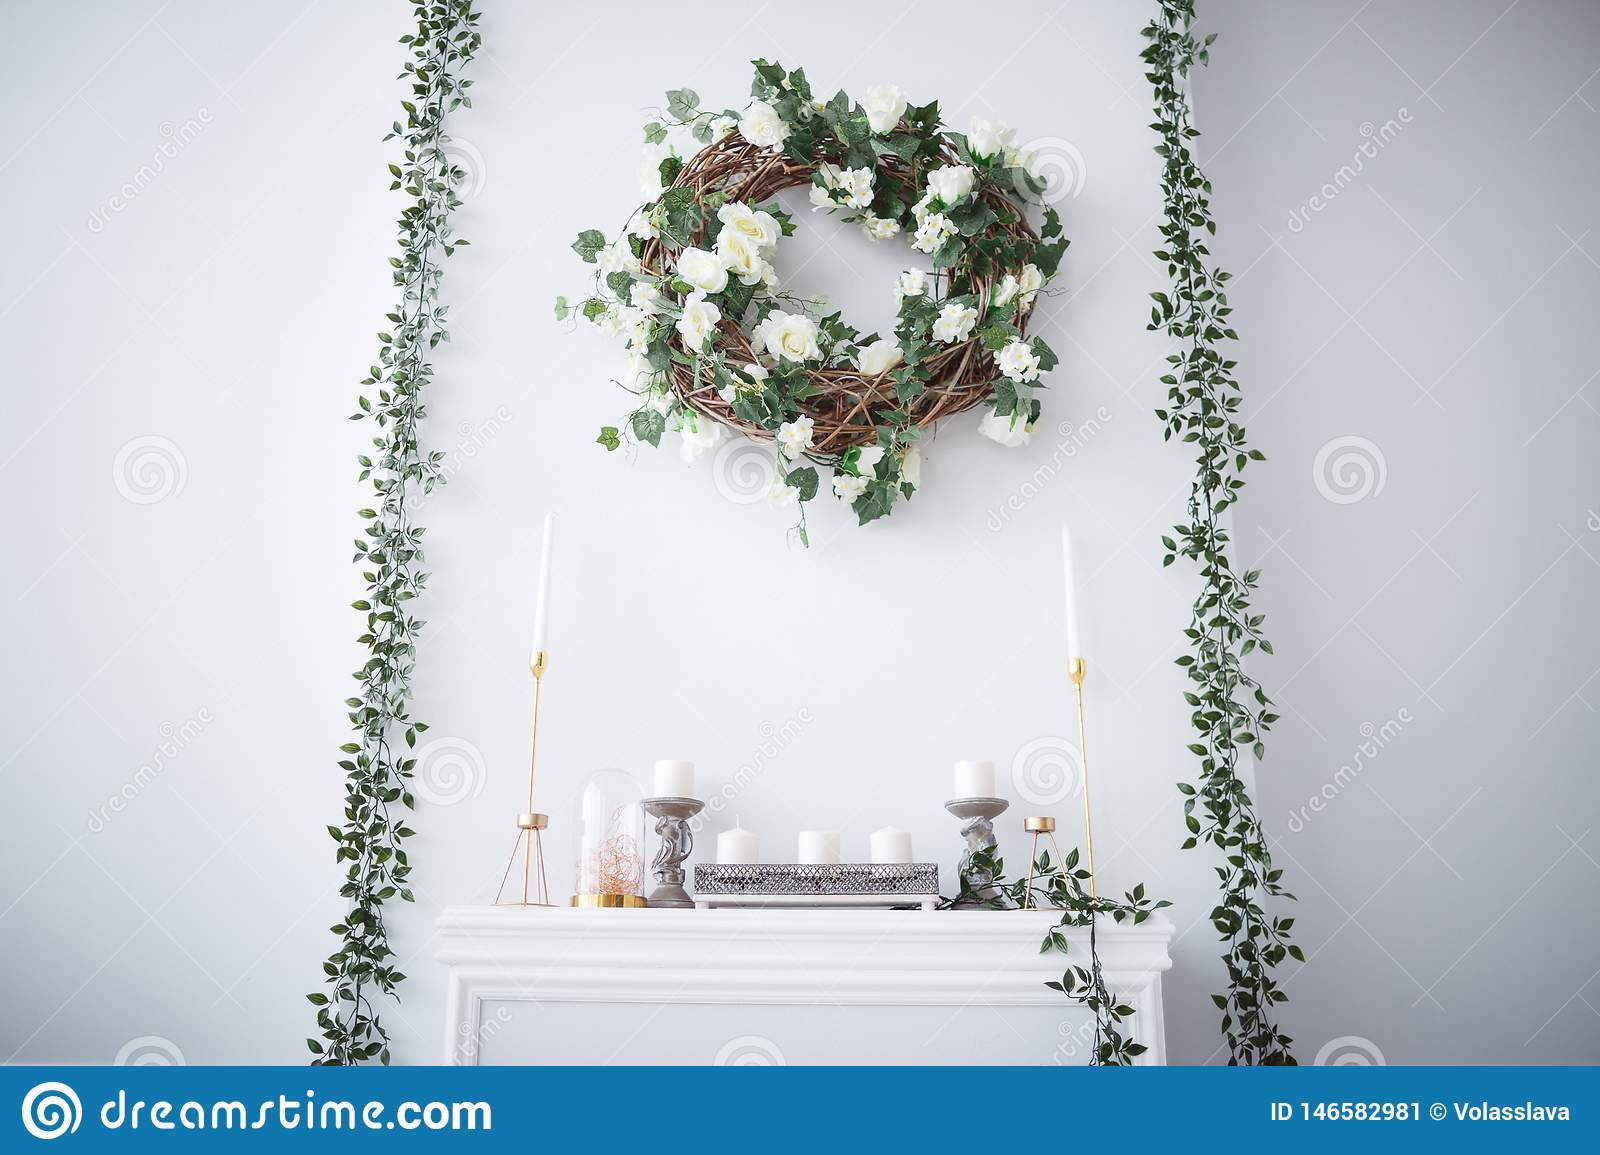 A wreath of roses hangs over the fireplace